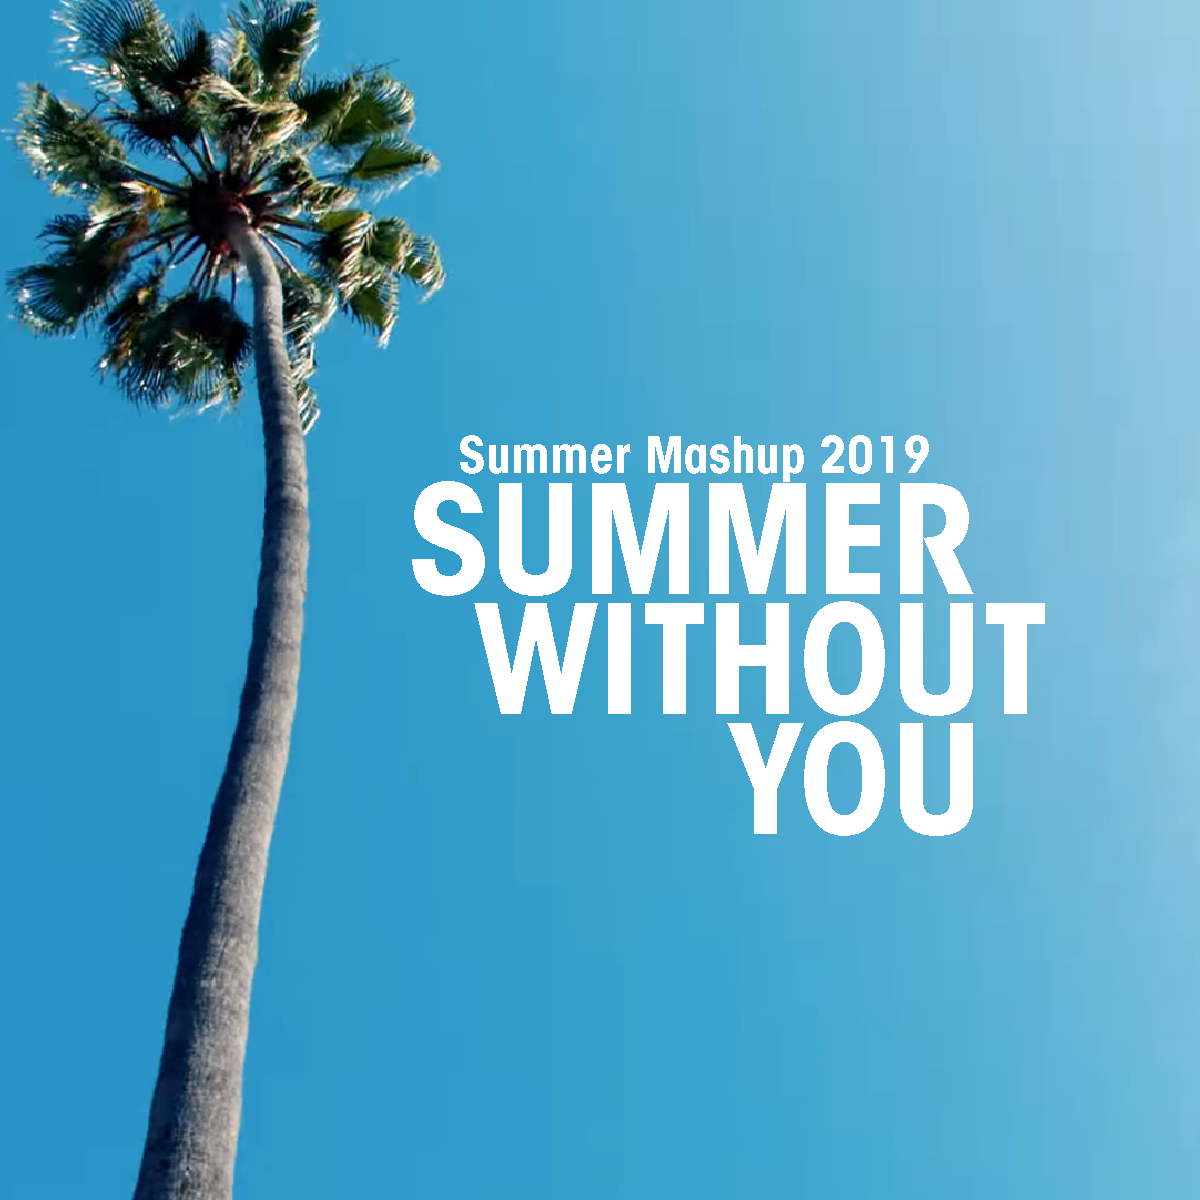 Summer Mashup 2019 (Summer without you)